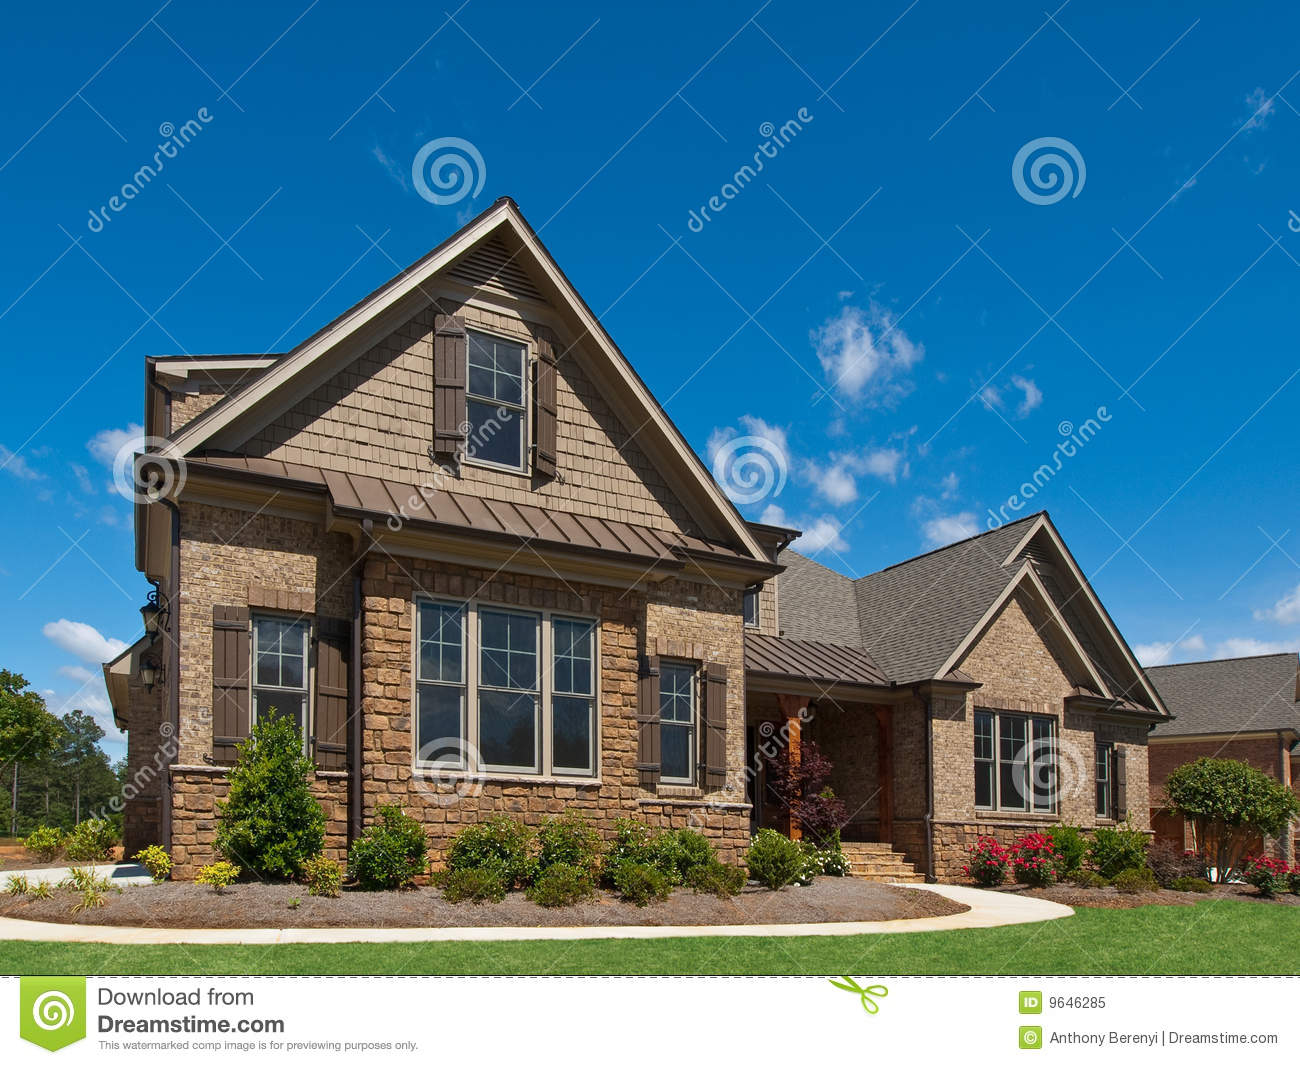 Model luxury home exterior angle view sidewalk stock image for Home img